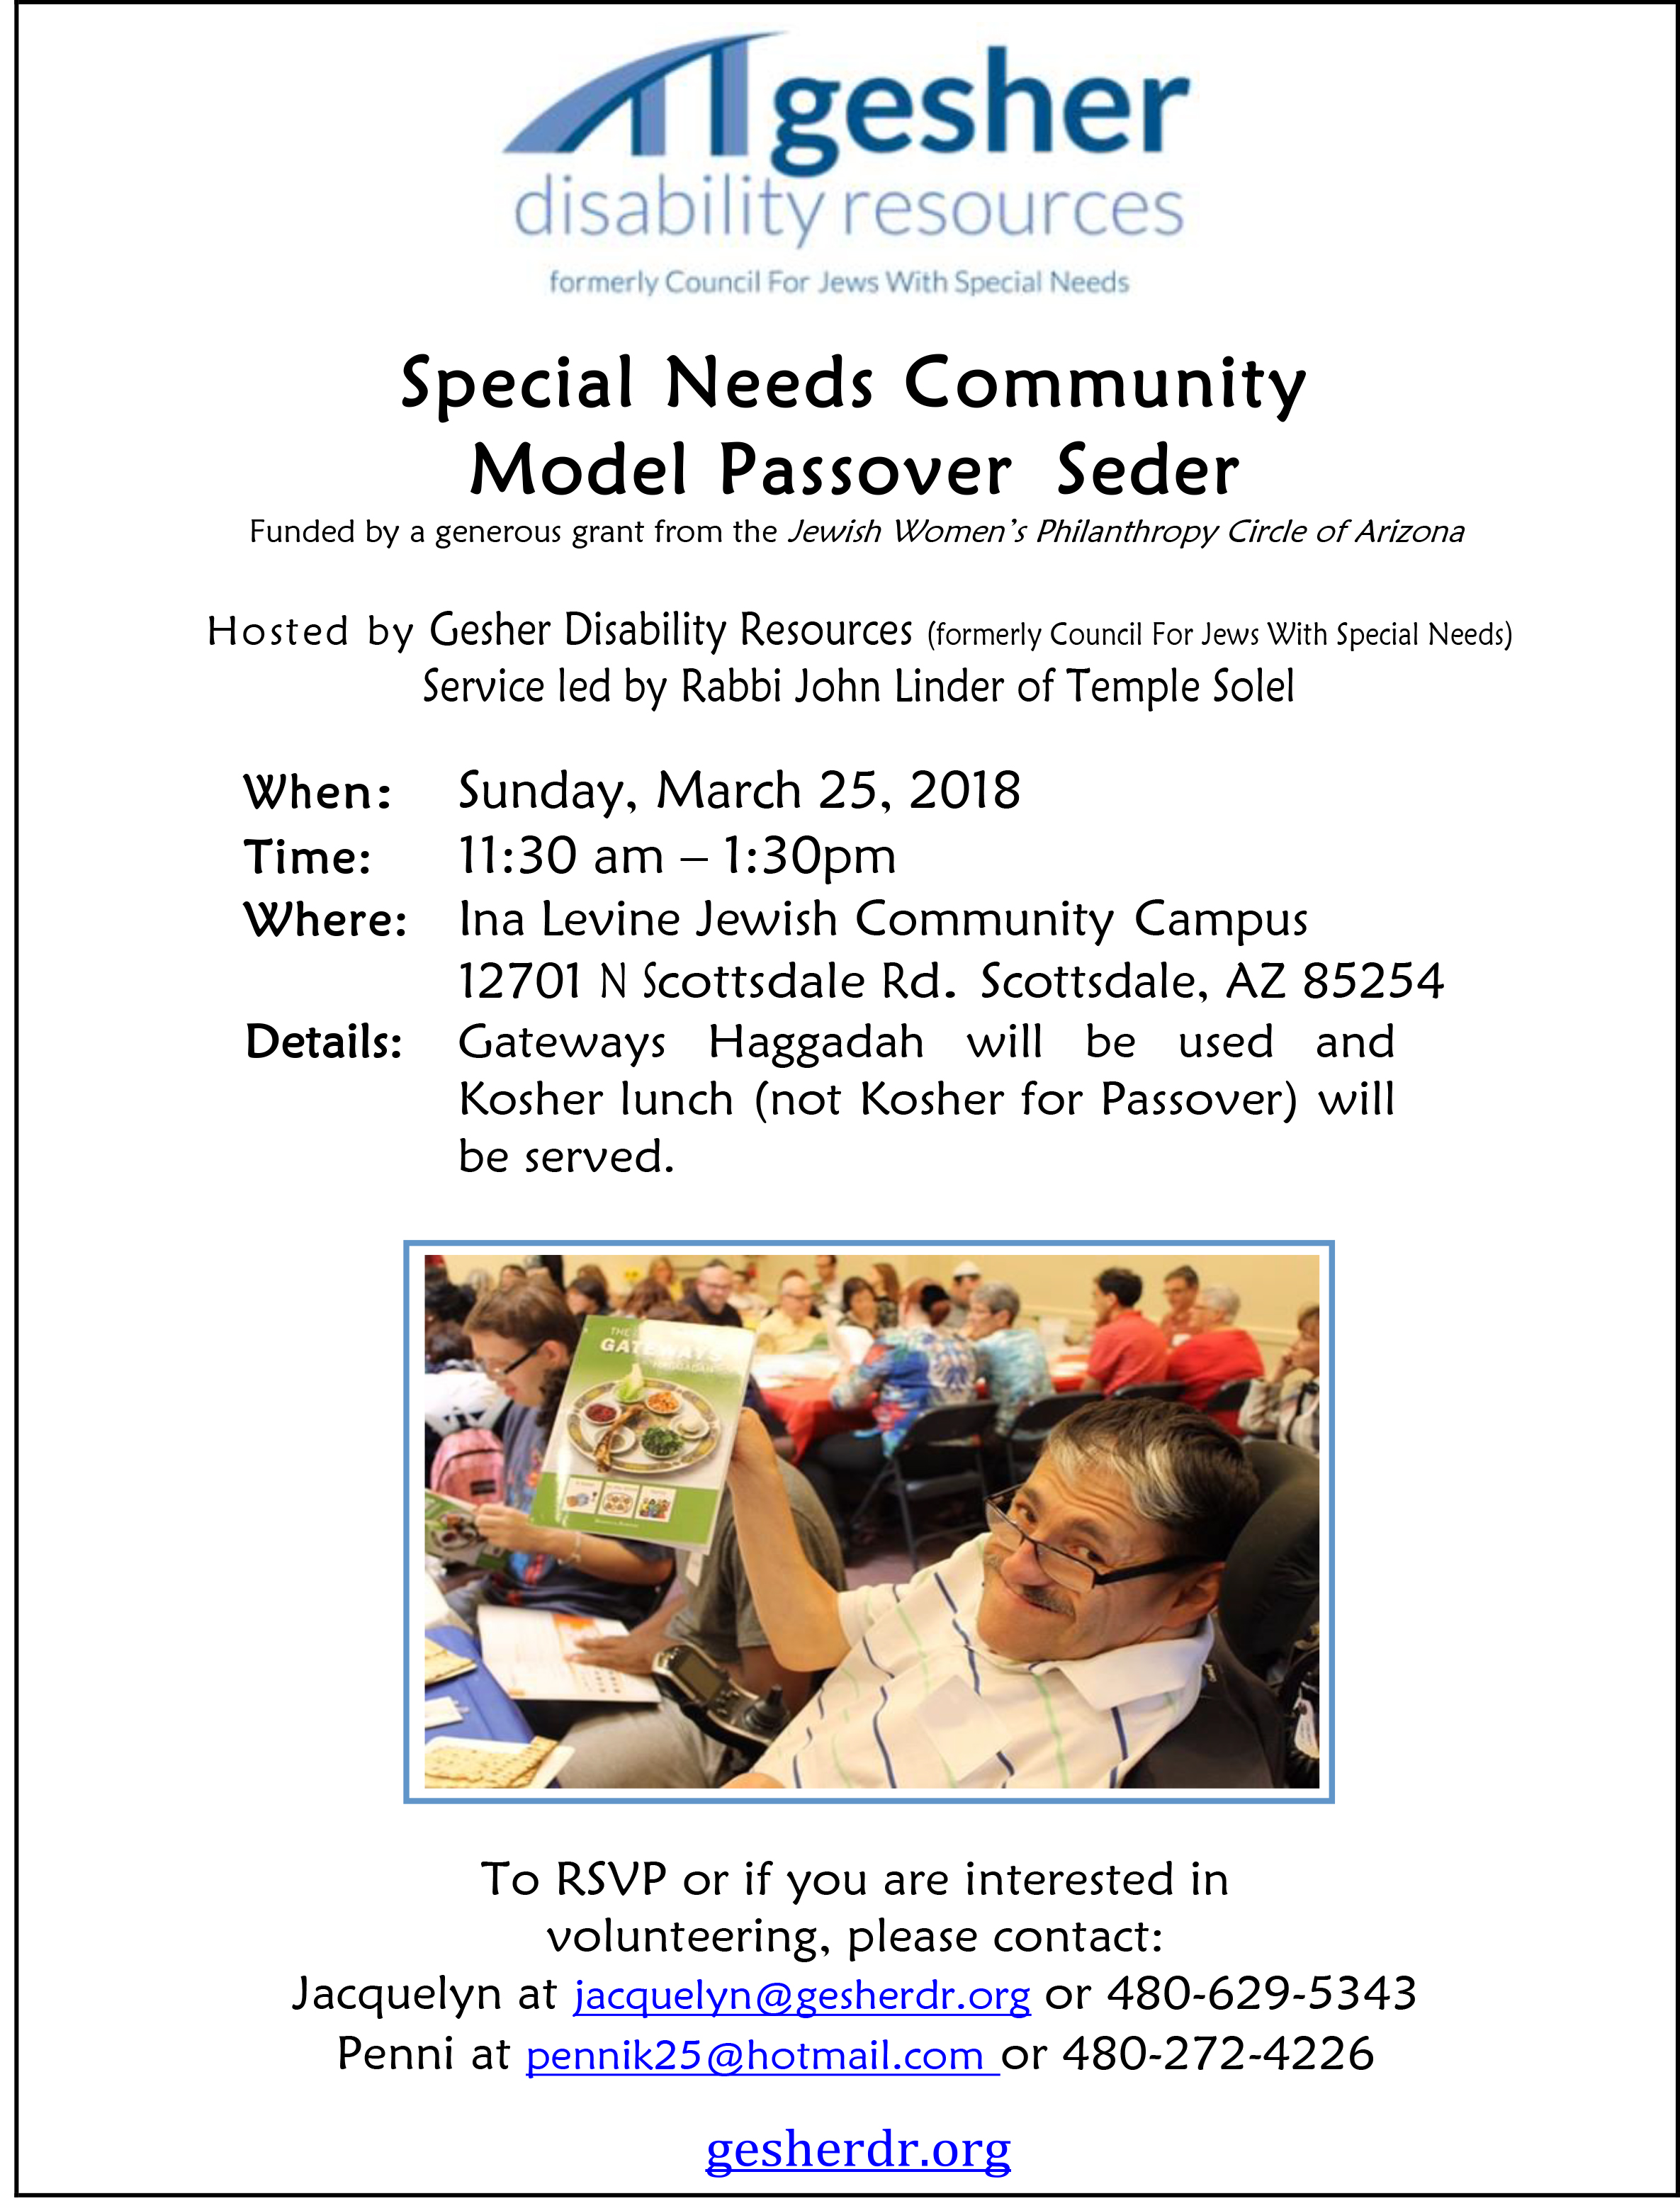 Community Model Passover Seder Gesher Disability Resources